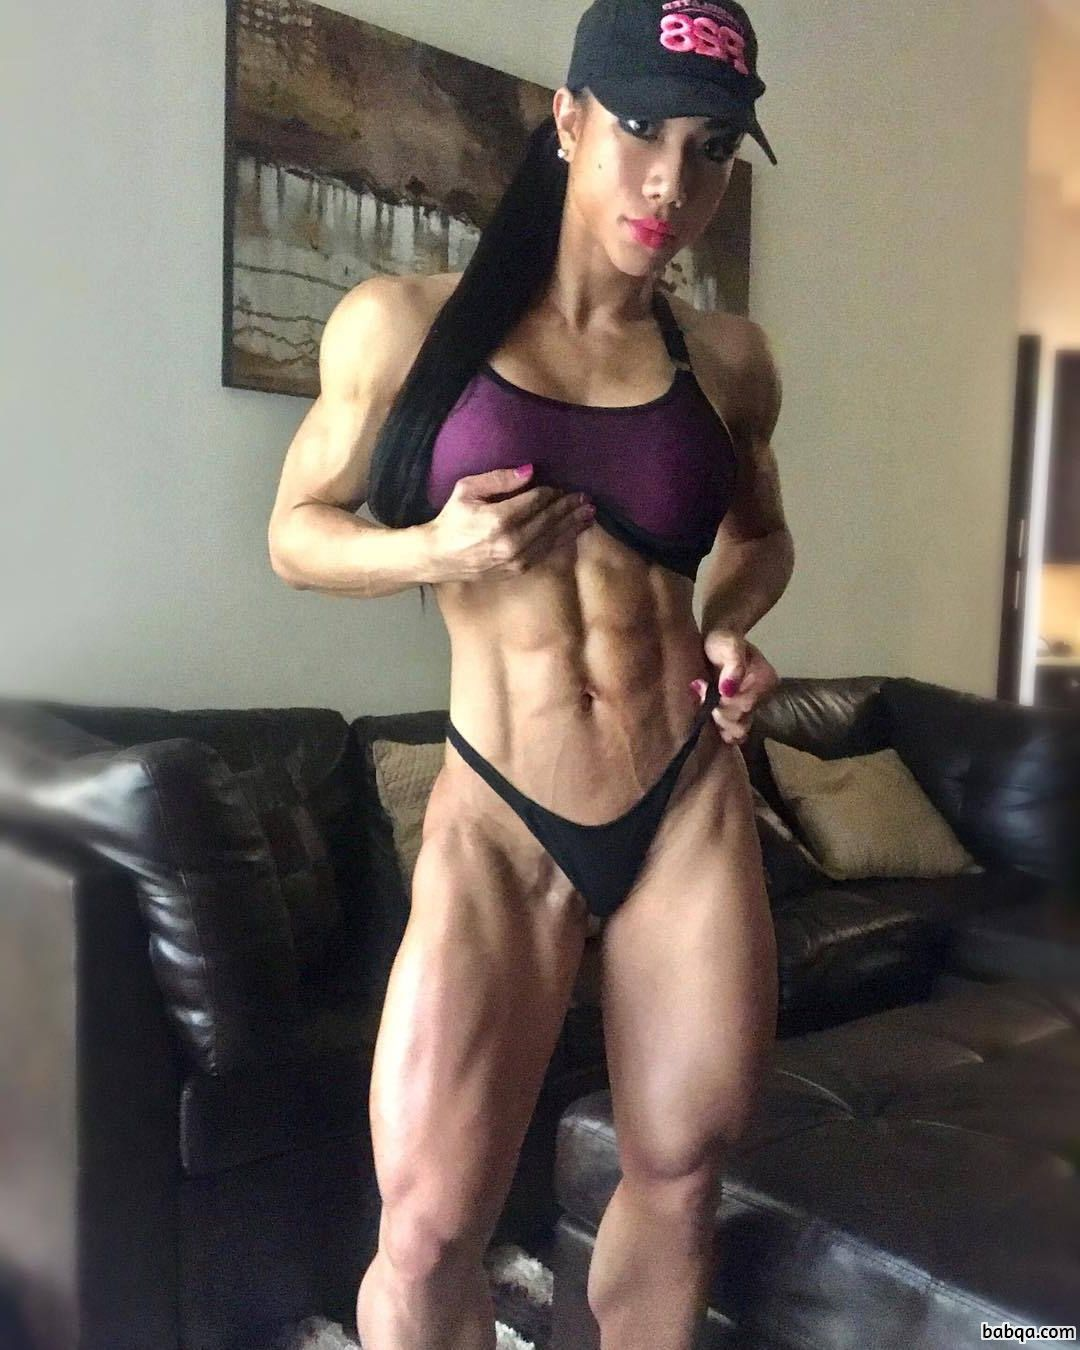 awesome woman with muscle body and muscle legs post from insta